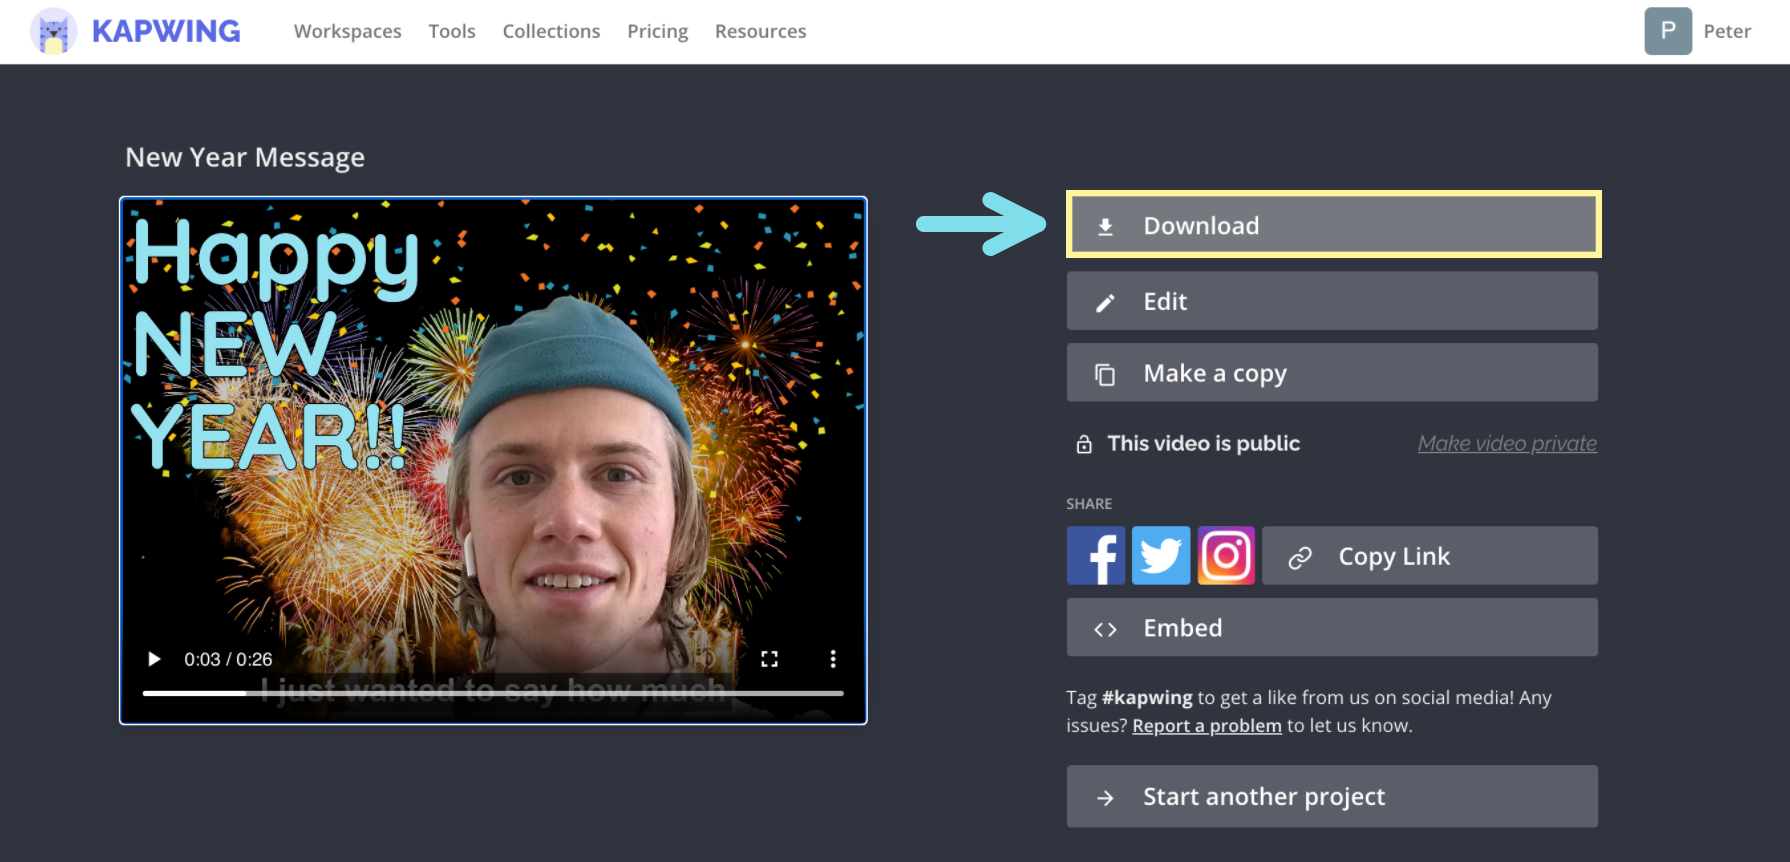 A screenshot demonstrating how to download a video from the final video page in Kapwing.